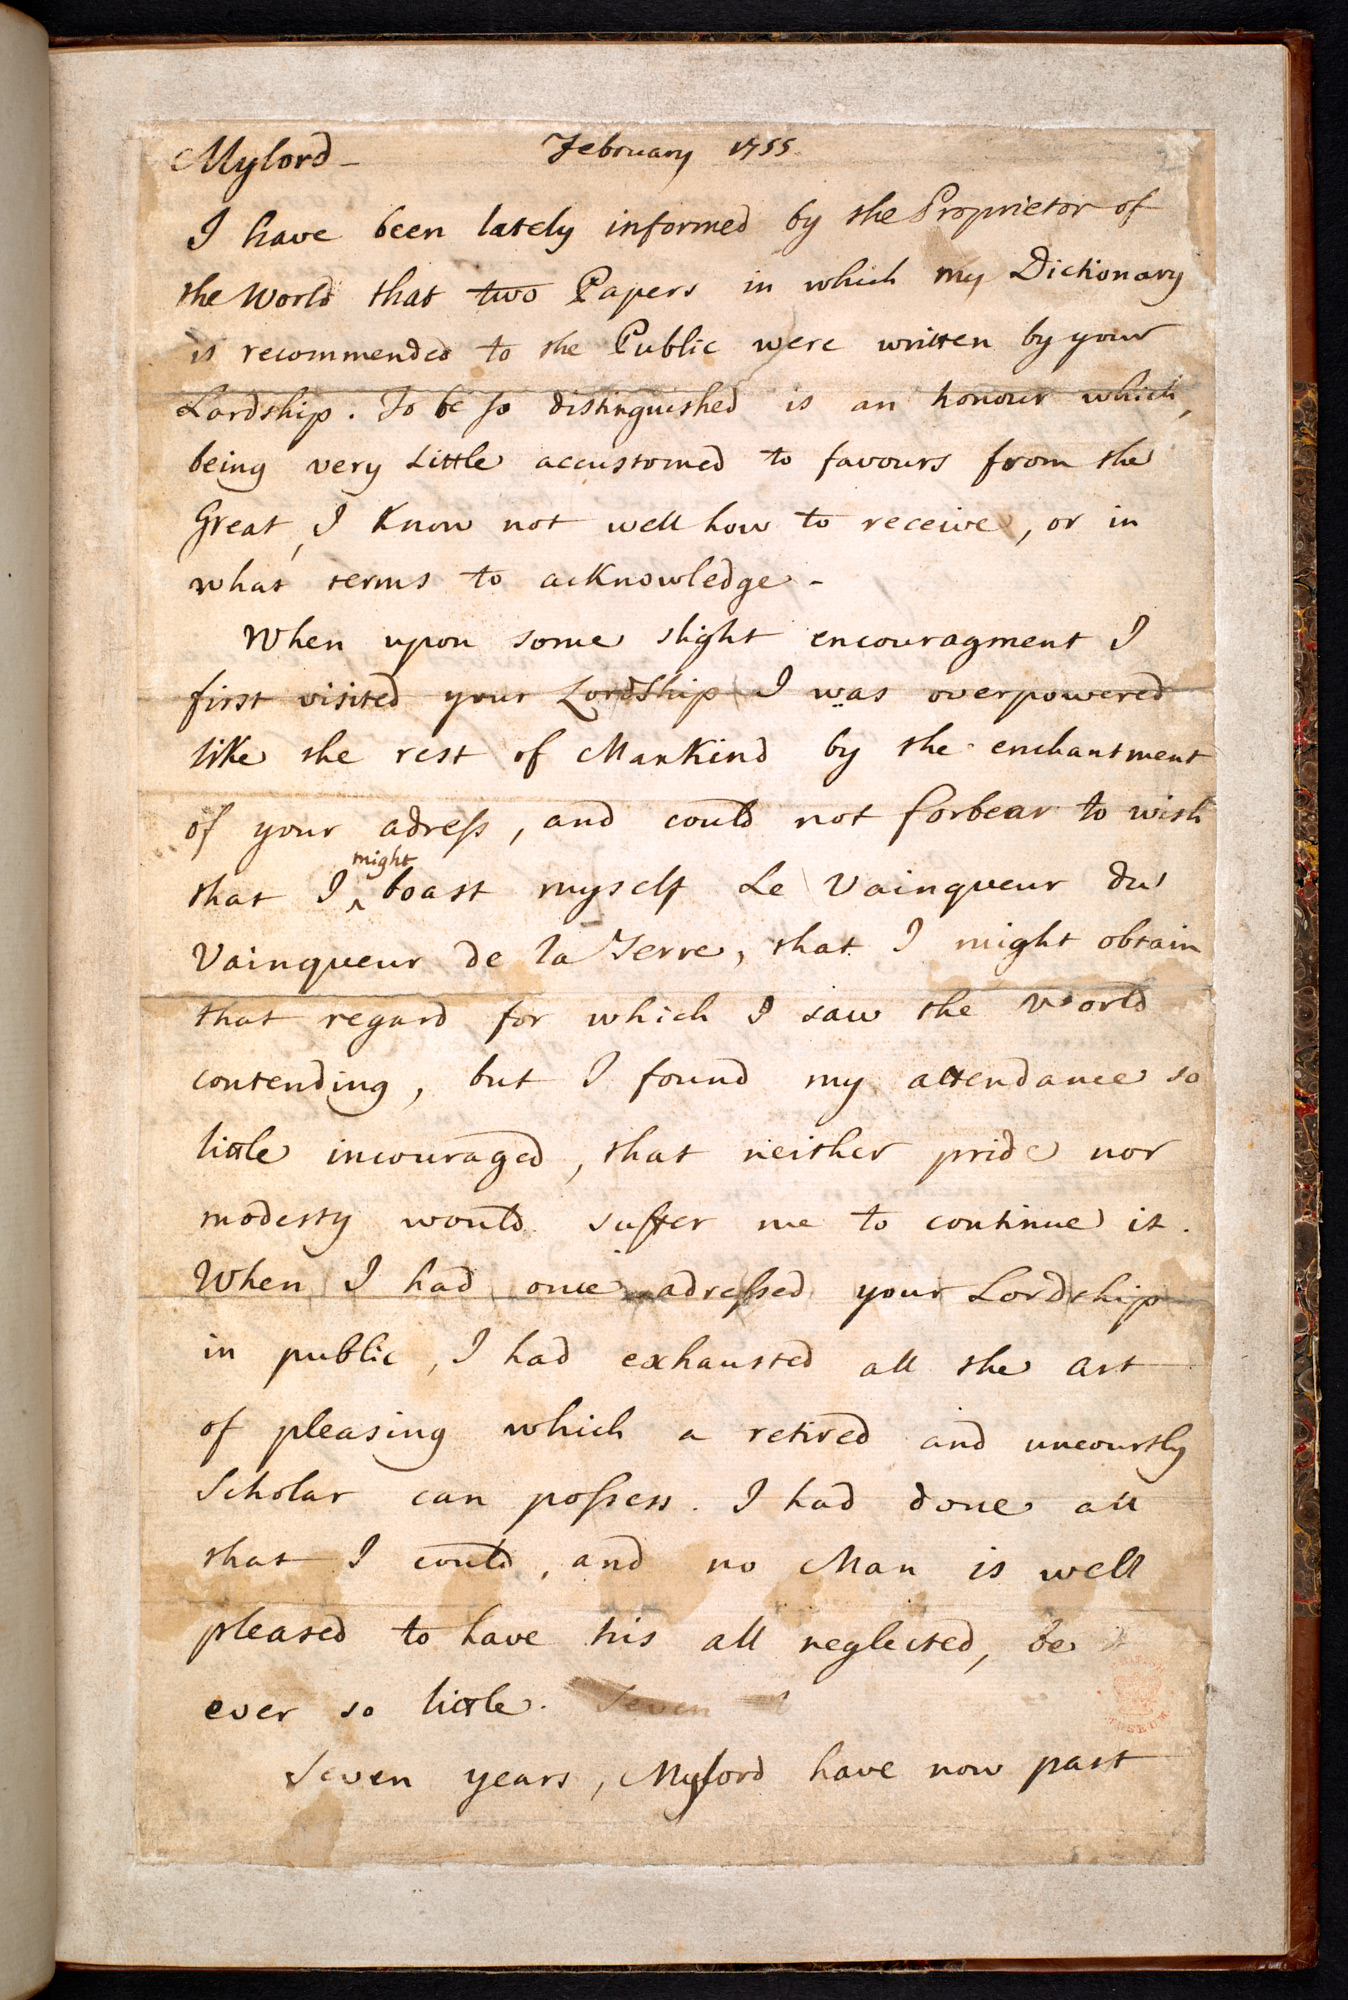 Copy of the letter from Samuel Johnson to the Earl of Chesterfield